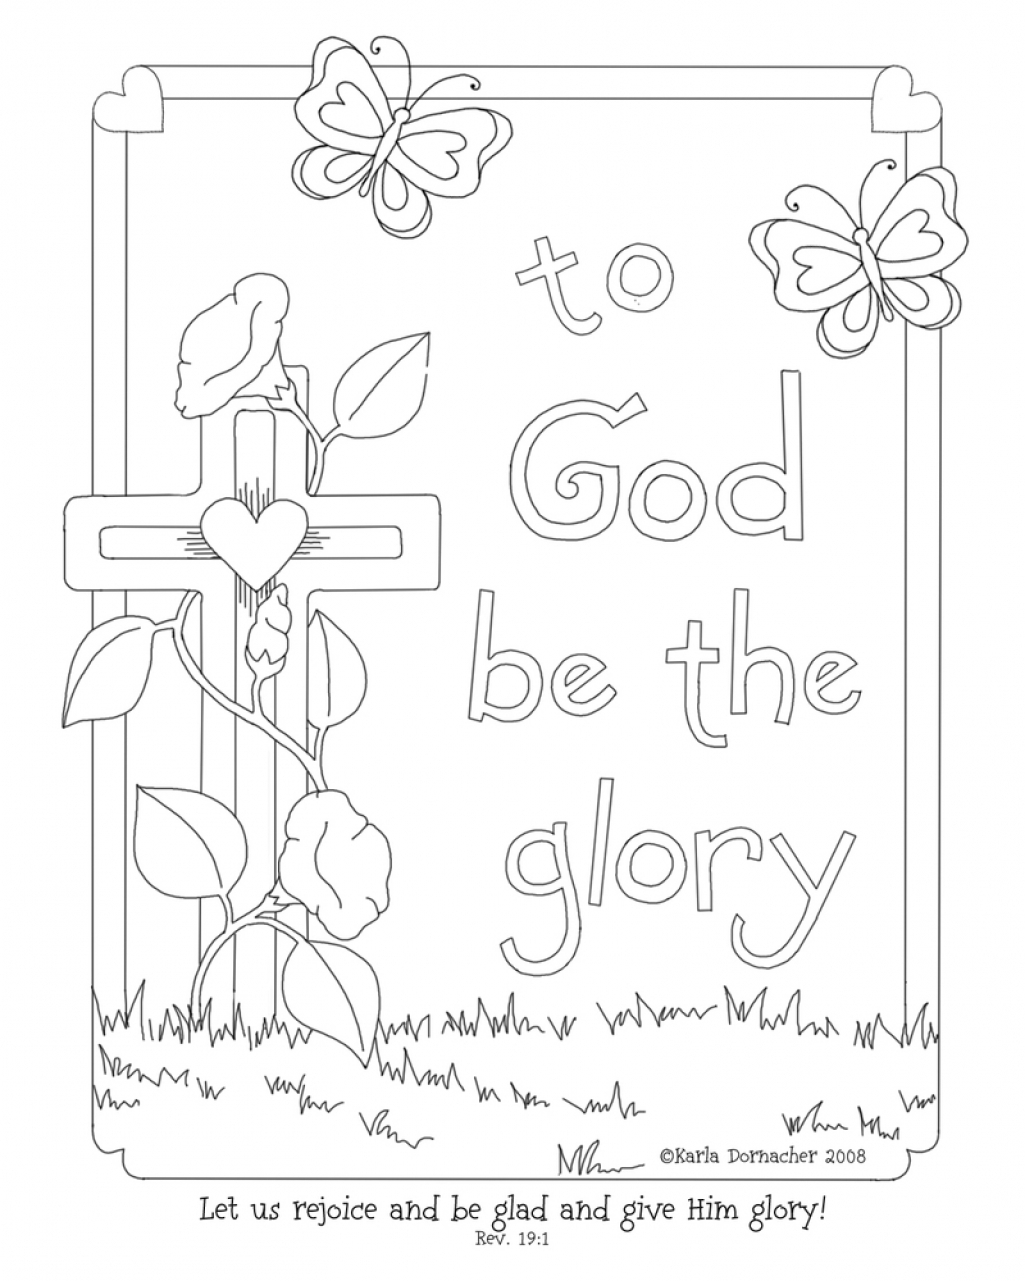 Fascinating Coloring Pages Sunday School at Menmadehome Image for to Print Of 28 Sunday School Coloring Pages for Preschoolers Jesus Loves Gallery